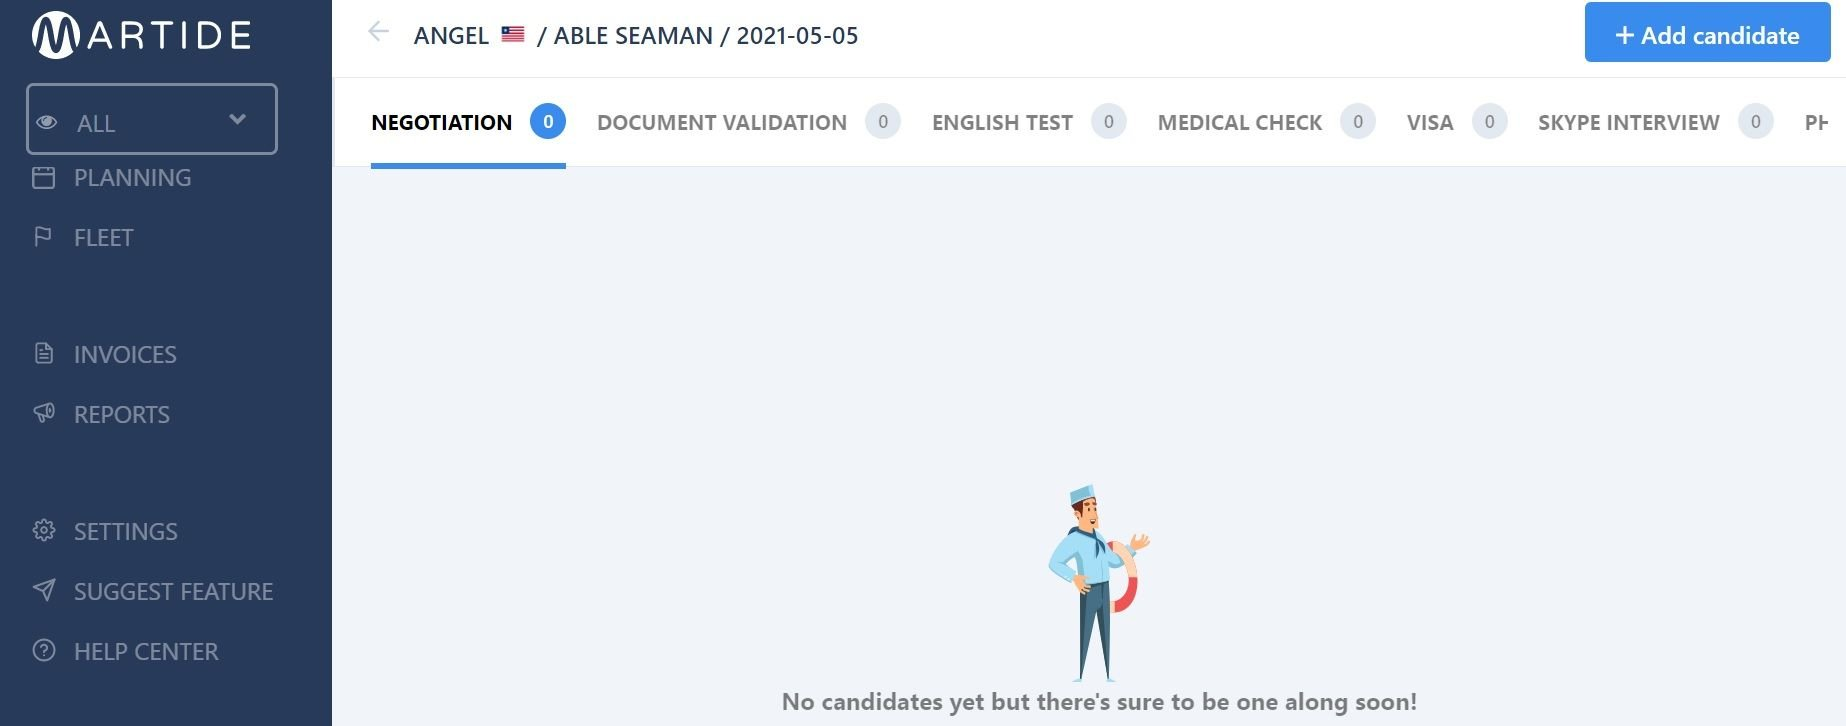 screenshot showing the new assignment page